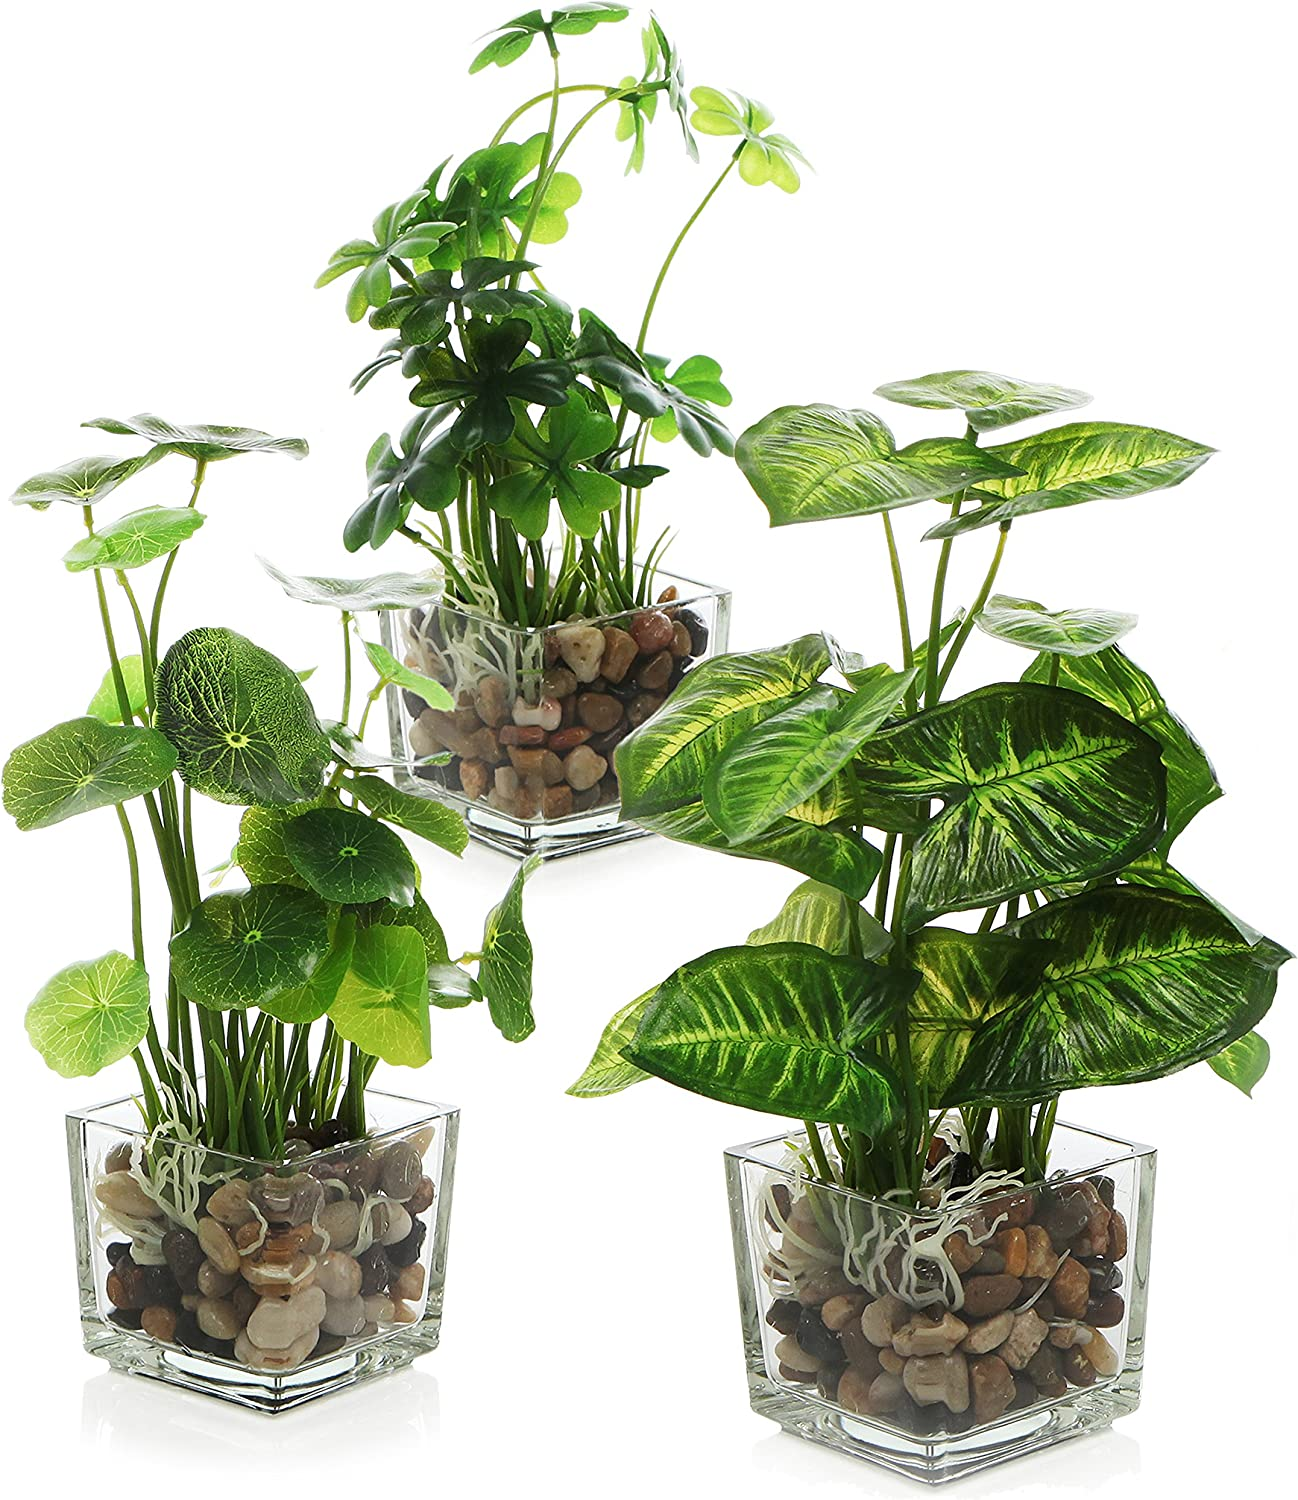 MyGift Set of 3 Artificial Plants, Faux Tabletop Greenery w/Clear Glass Pots